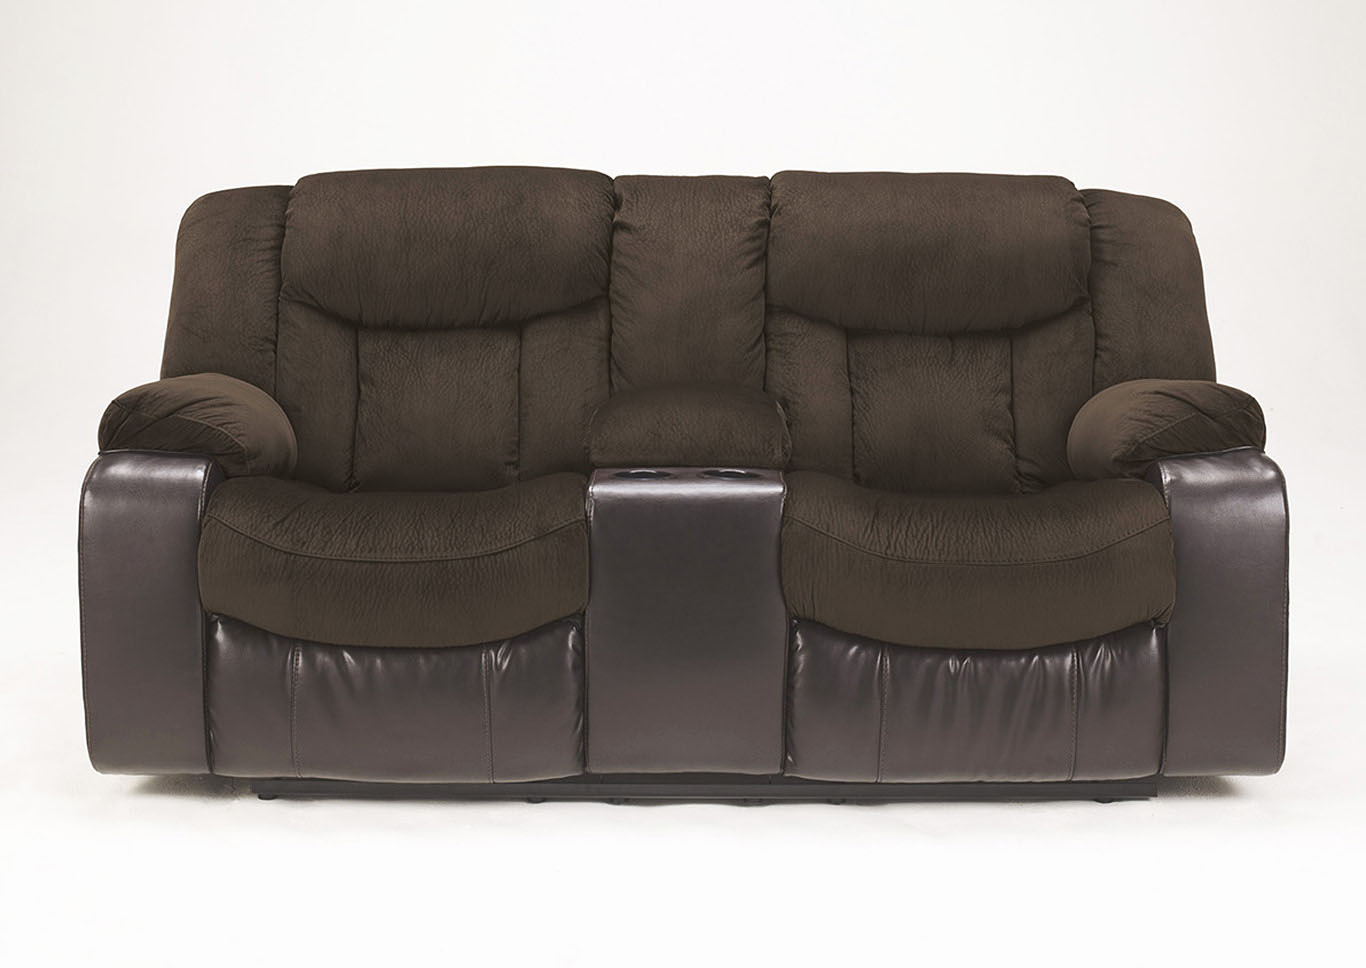 Furniture liquidators home center tafton java double reclining loveseat w console Reclining loveseat with center console